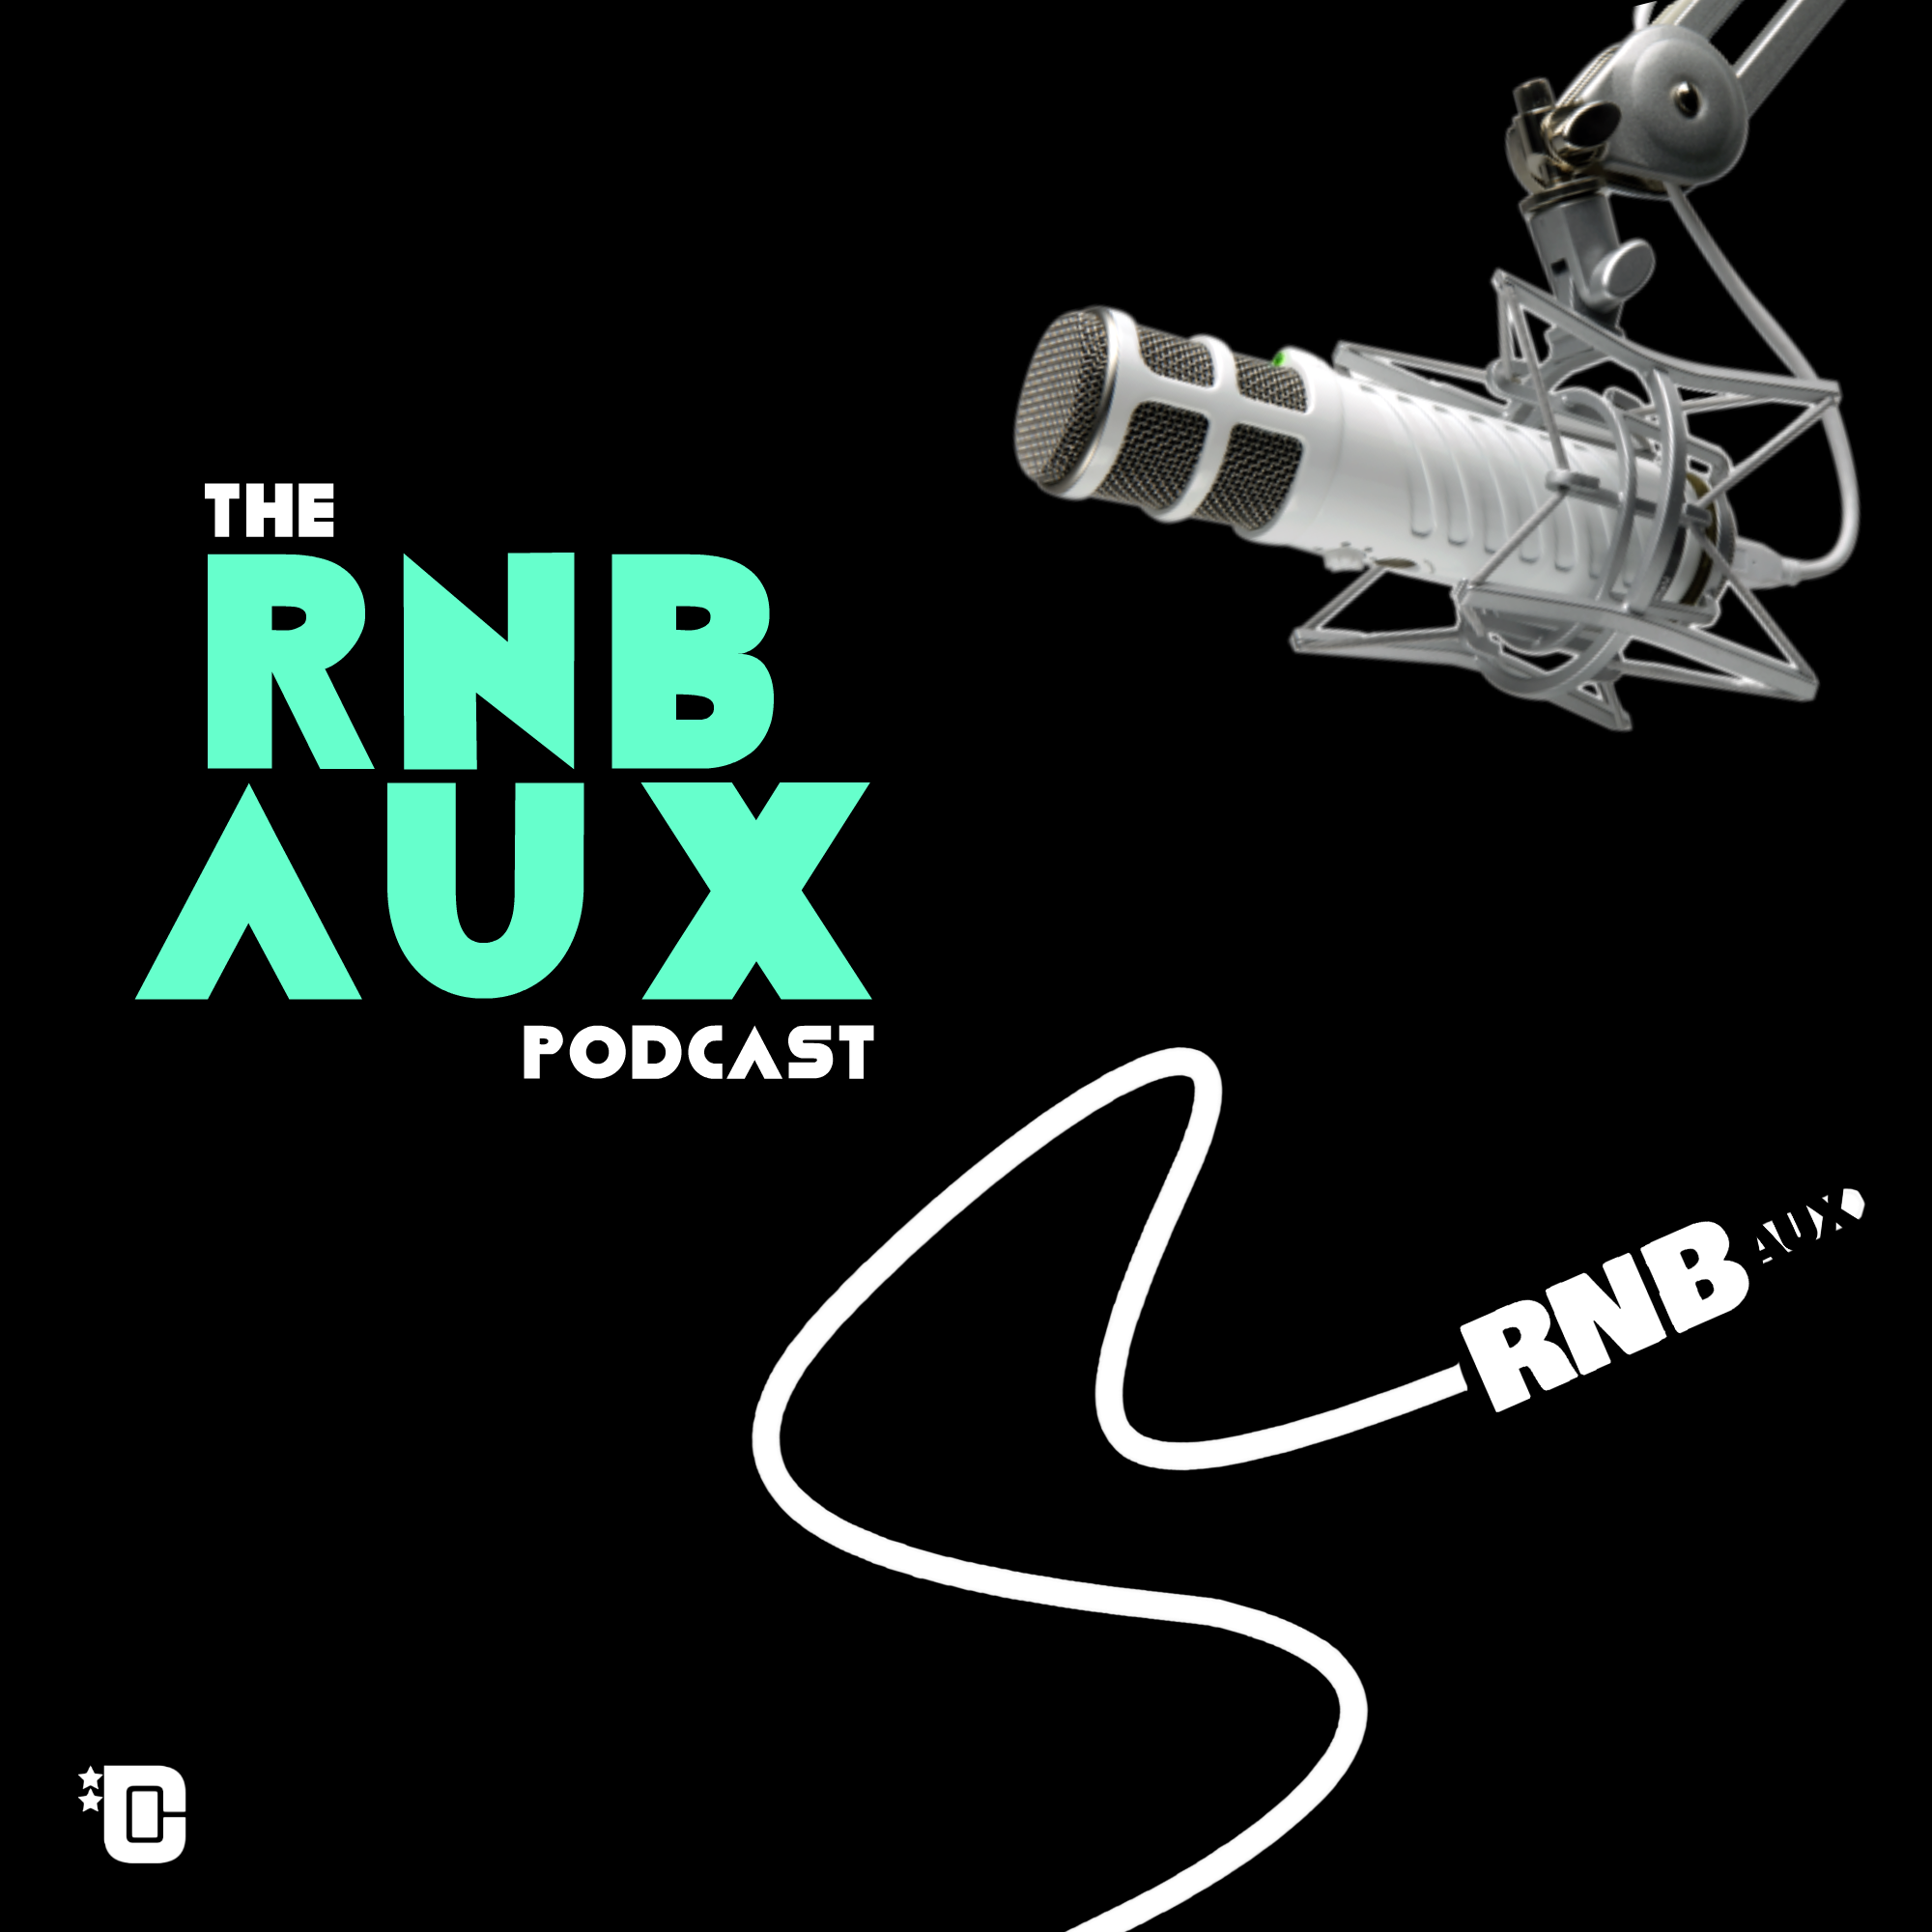 The RnB Aux Podcast